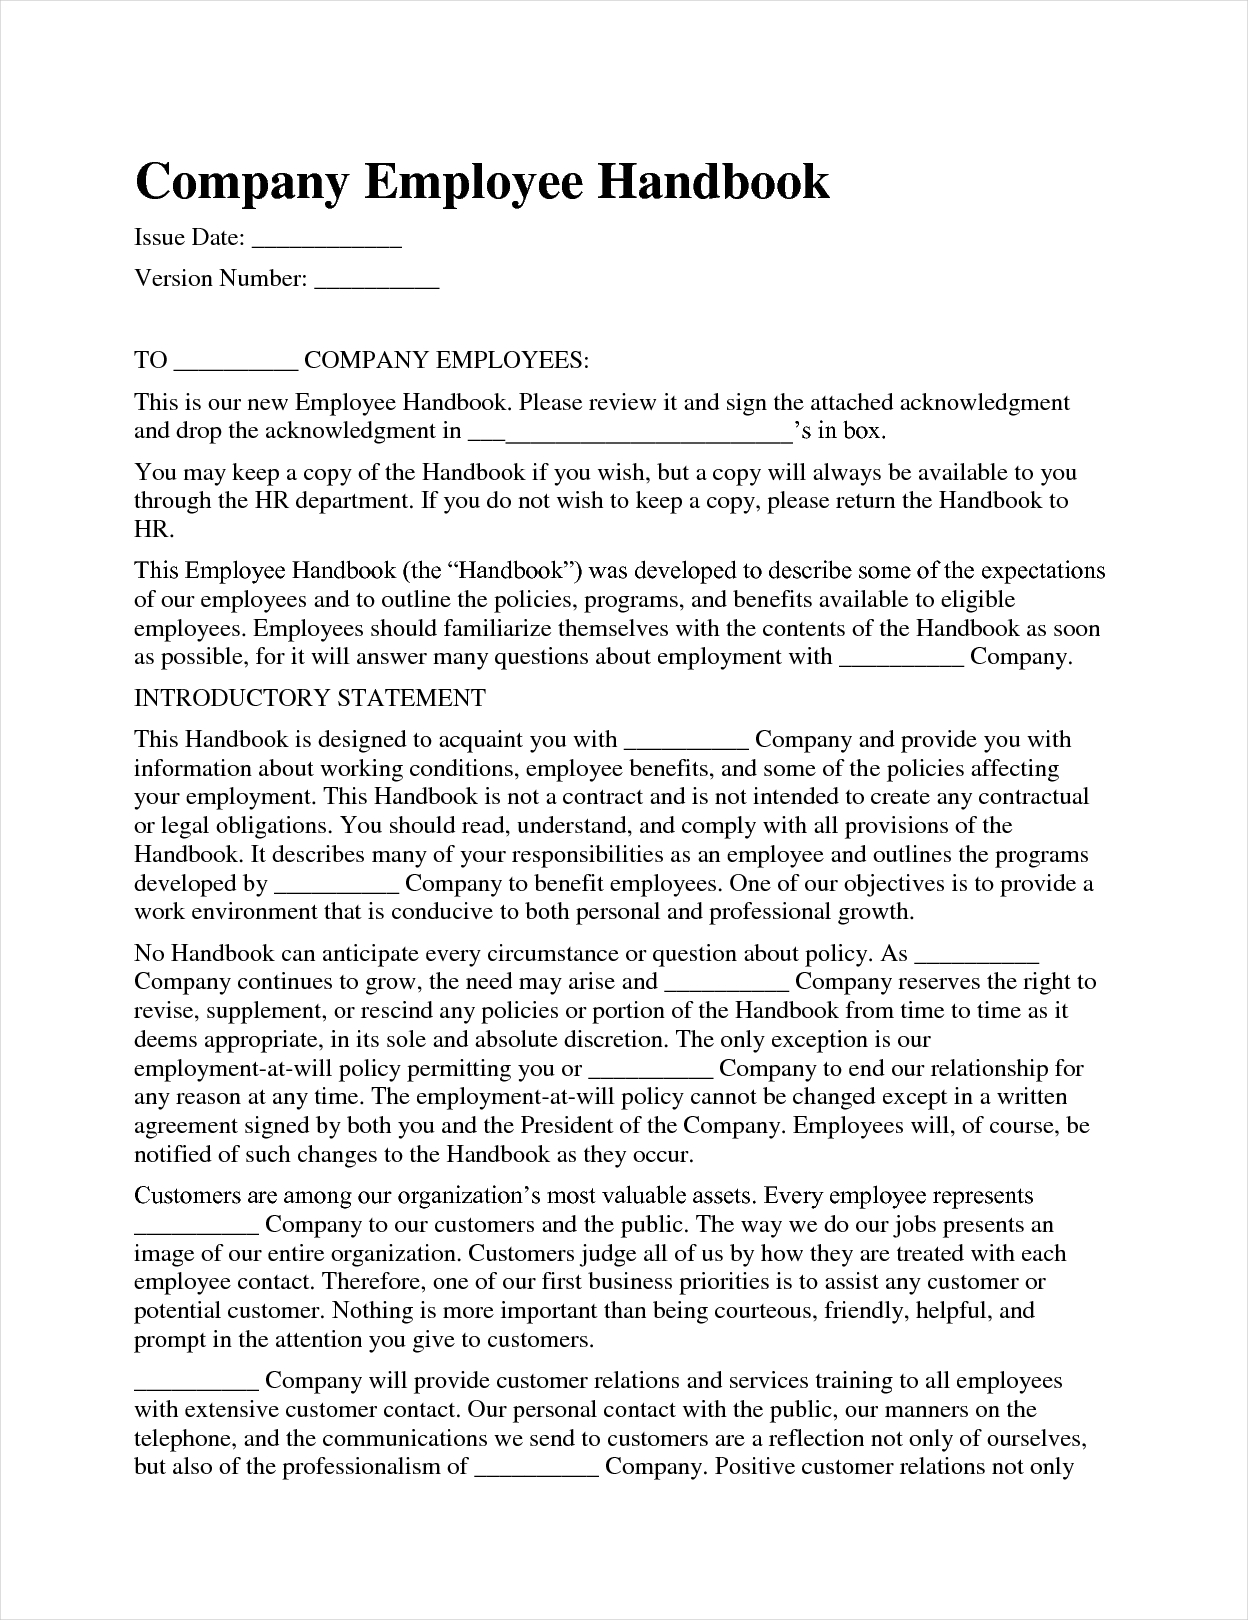 Employee handbook outline examples pdf for Employee guidelines template